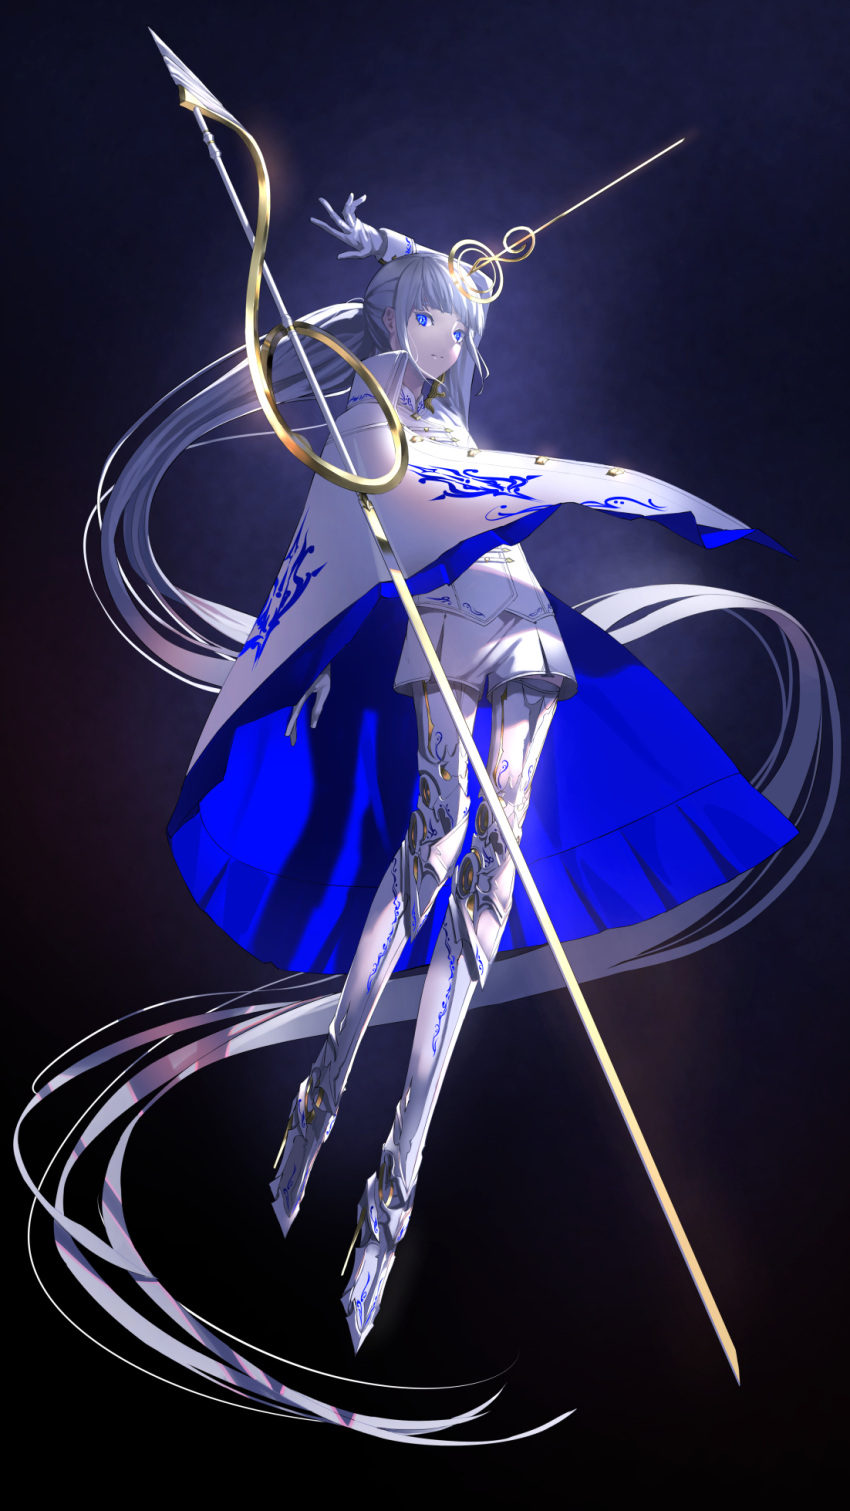 1girl absurdly_long_hair arms_up blue_eyes capelet expressionless full_body gloves gold_trim gradient gradient_background headpiece highres jacket long_hair long_legs looking_at_viewer original ponytail prosthesis prosthetic_leg shorts sword treble_clef tsuki-shigure very_long_hair weapon white_gloves white_hair white_jacket white_shorts